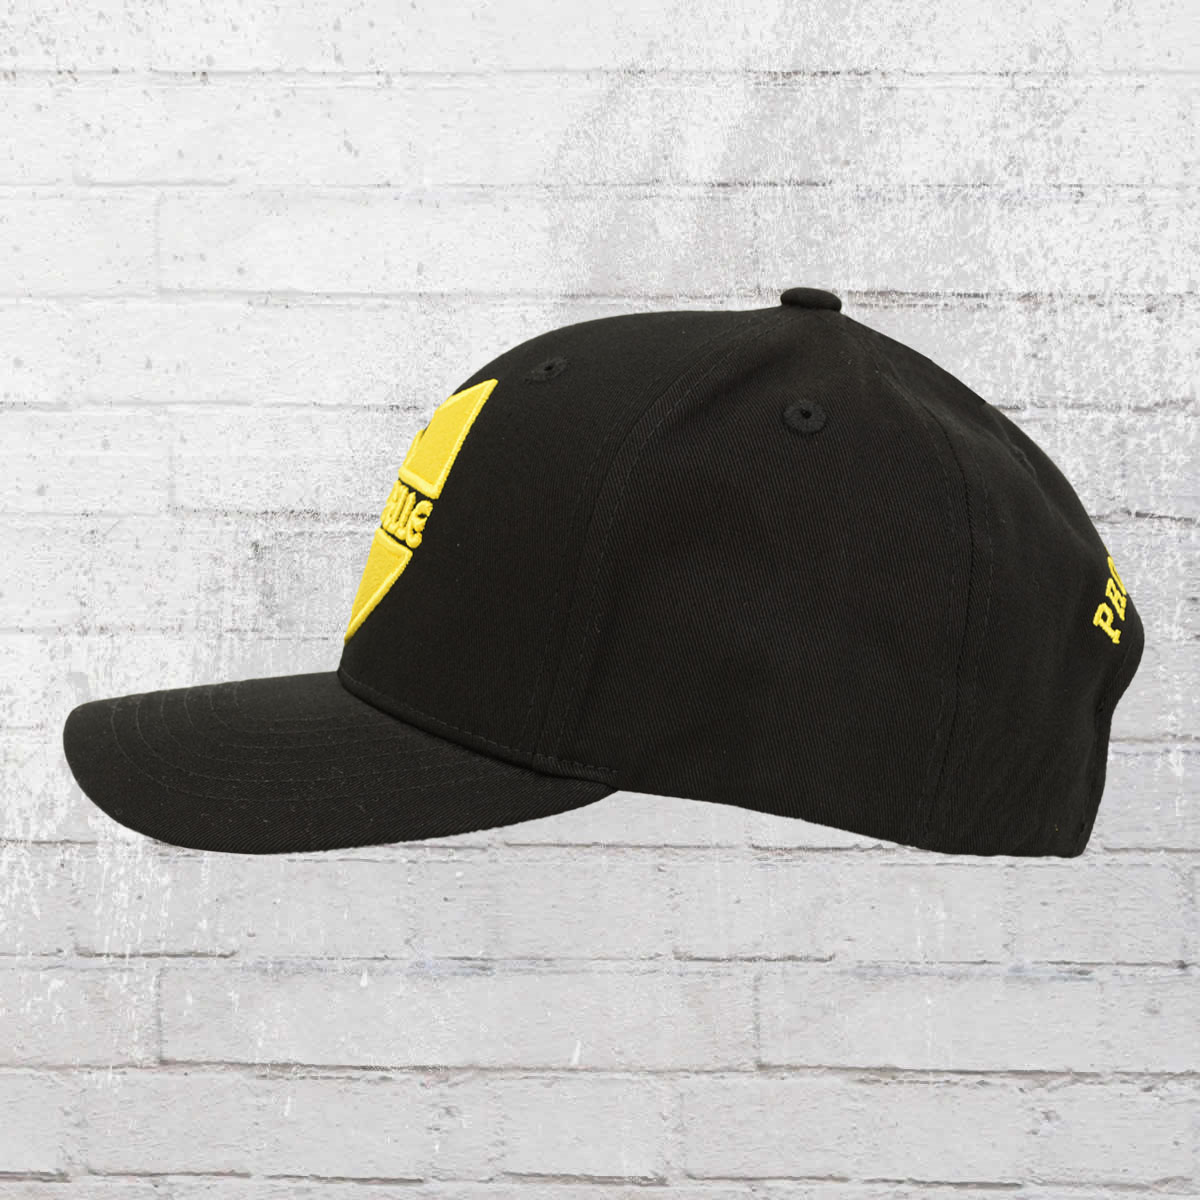 62f08f73c3d Have you seen  Pelle Pelle Curved Cap Core Label Snapback ...